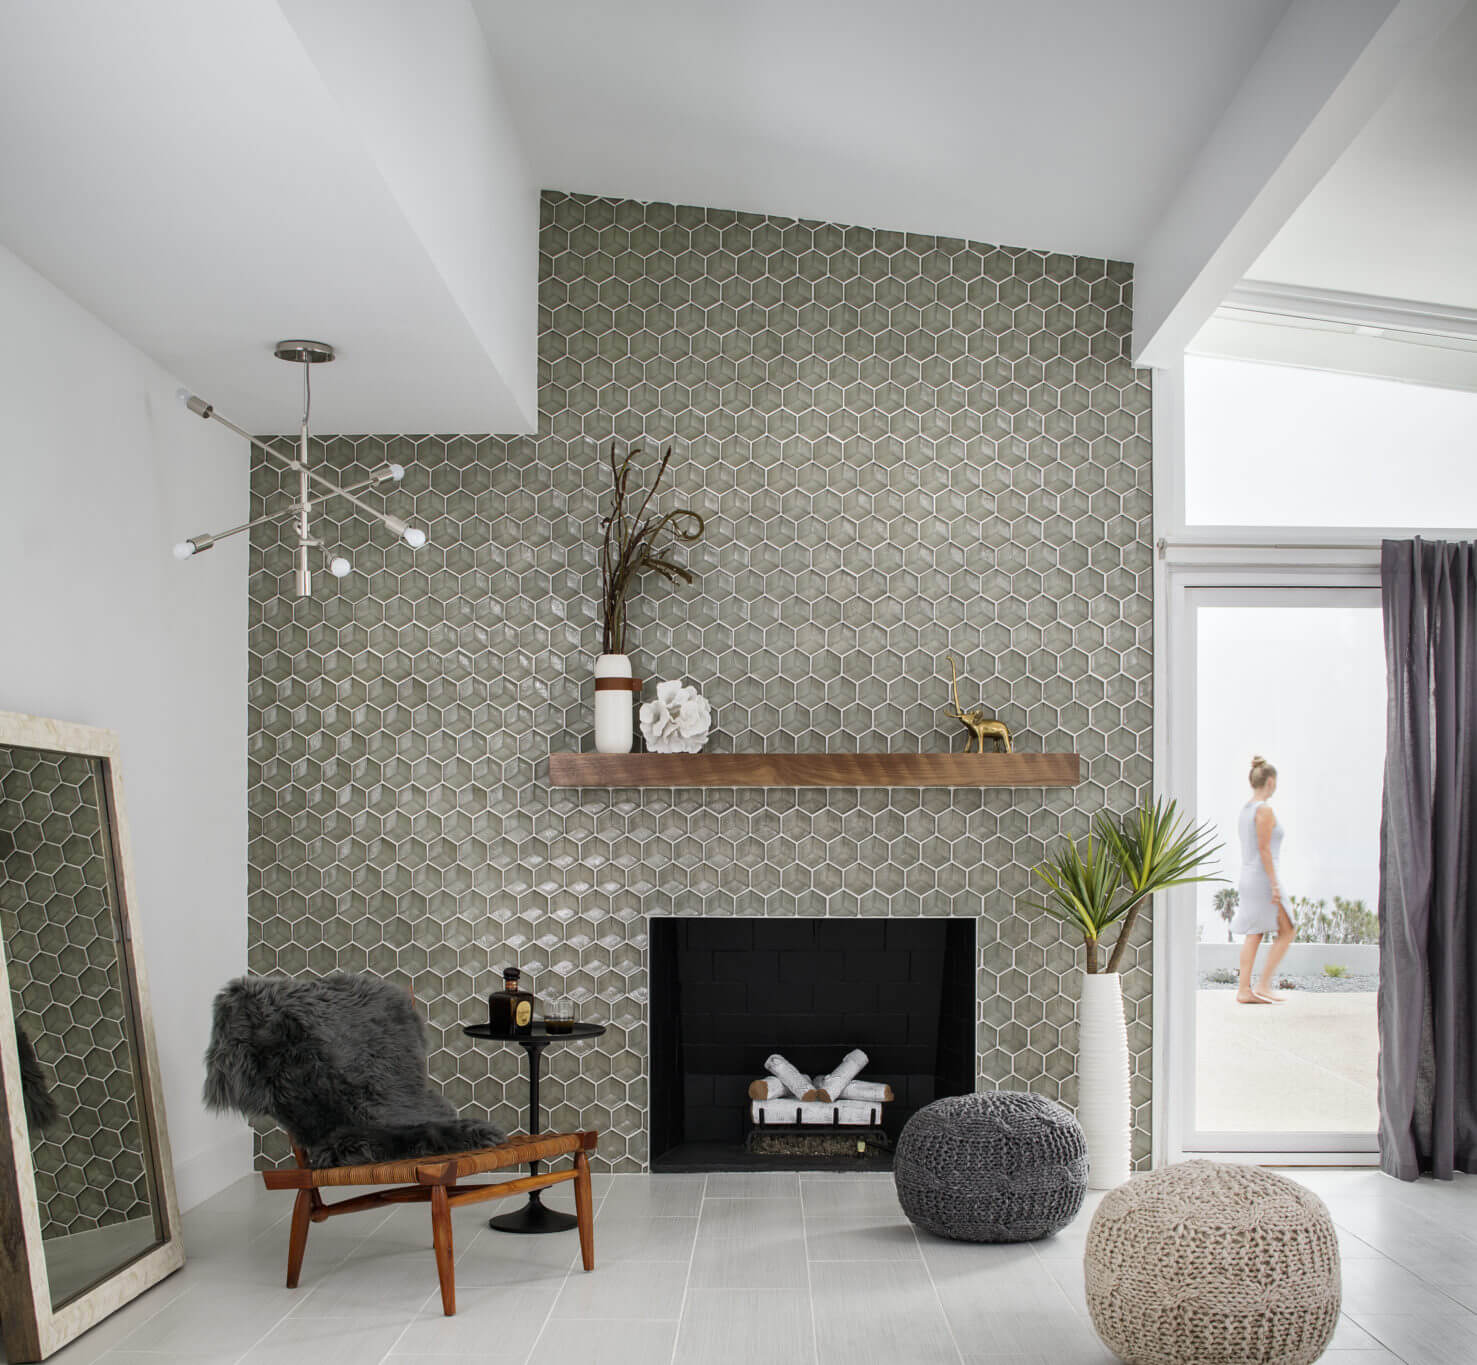 Gray hexagon tile mosaic feature wall / fireplace surround